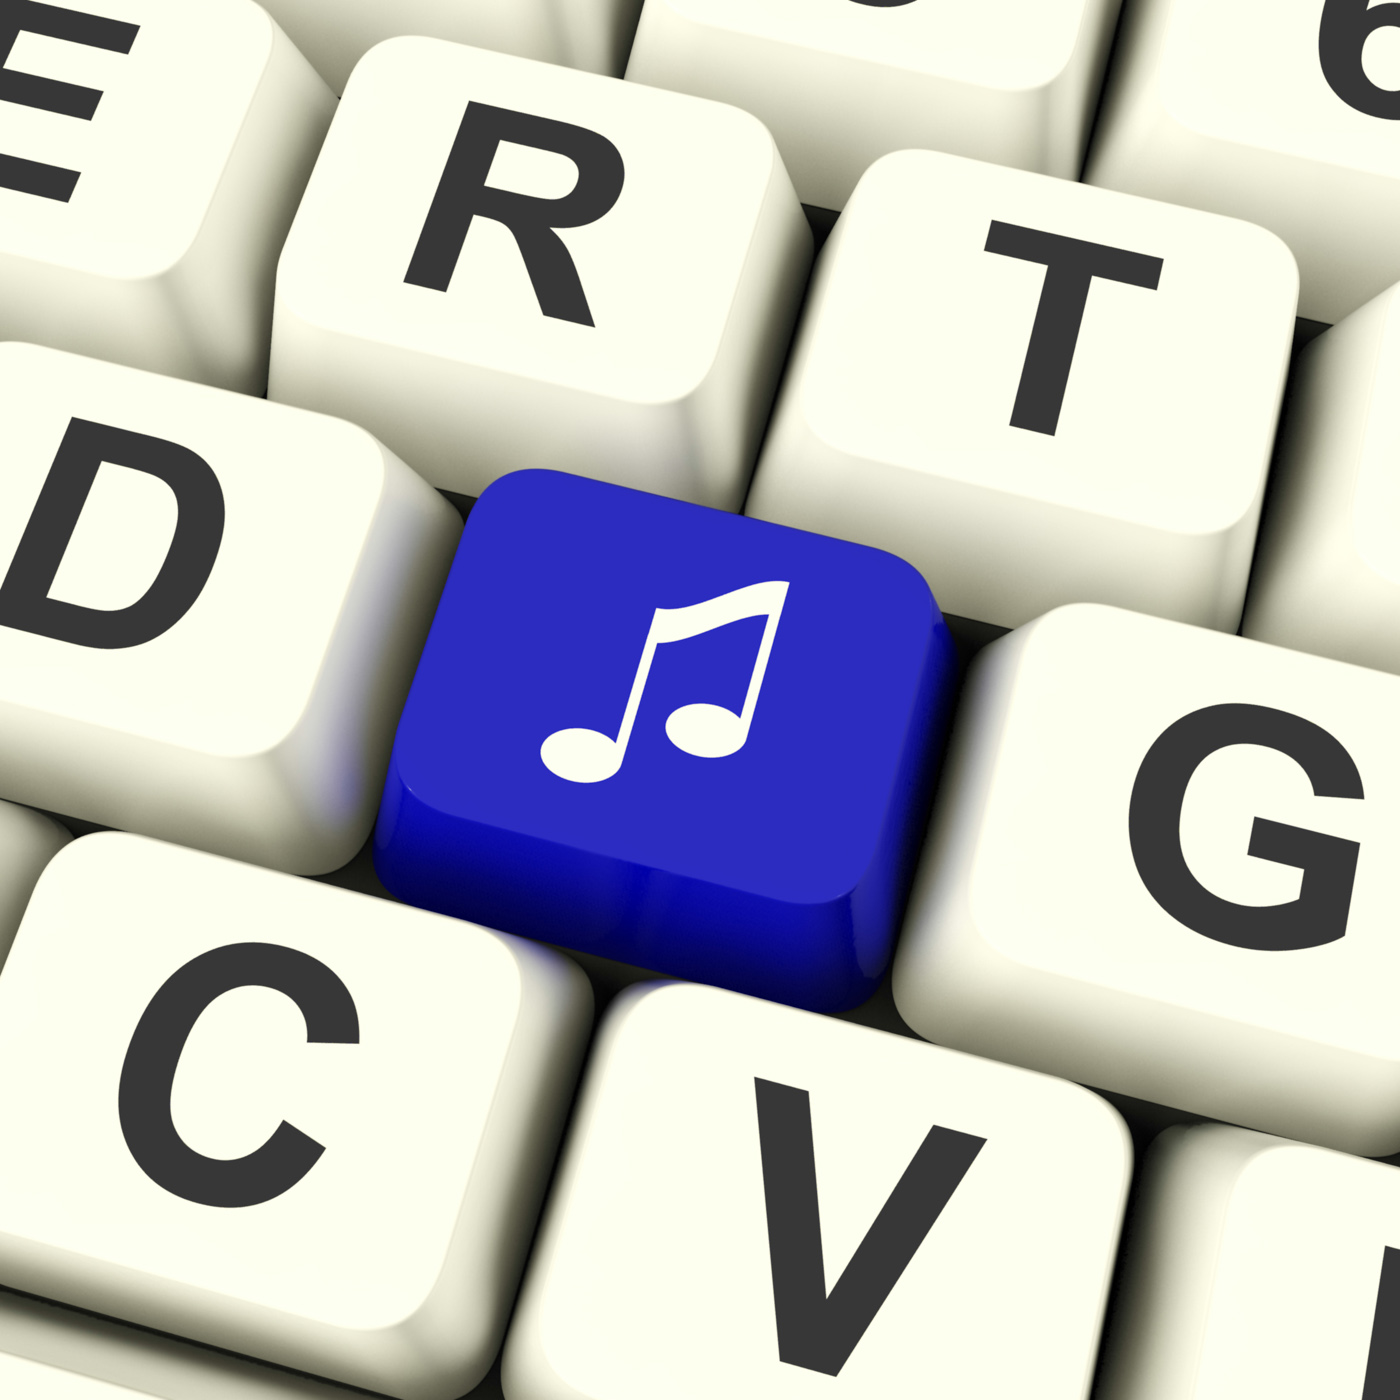 Music Symbol Computer Key In Blue Showing Online Audio Or Radio, Player, Play, Online, Note, HQ Photo